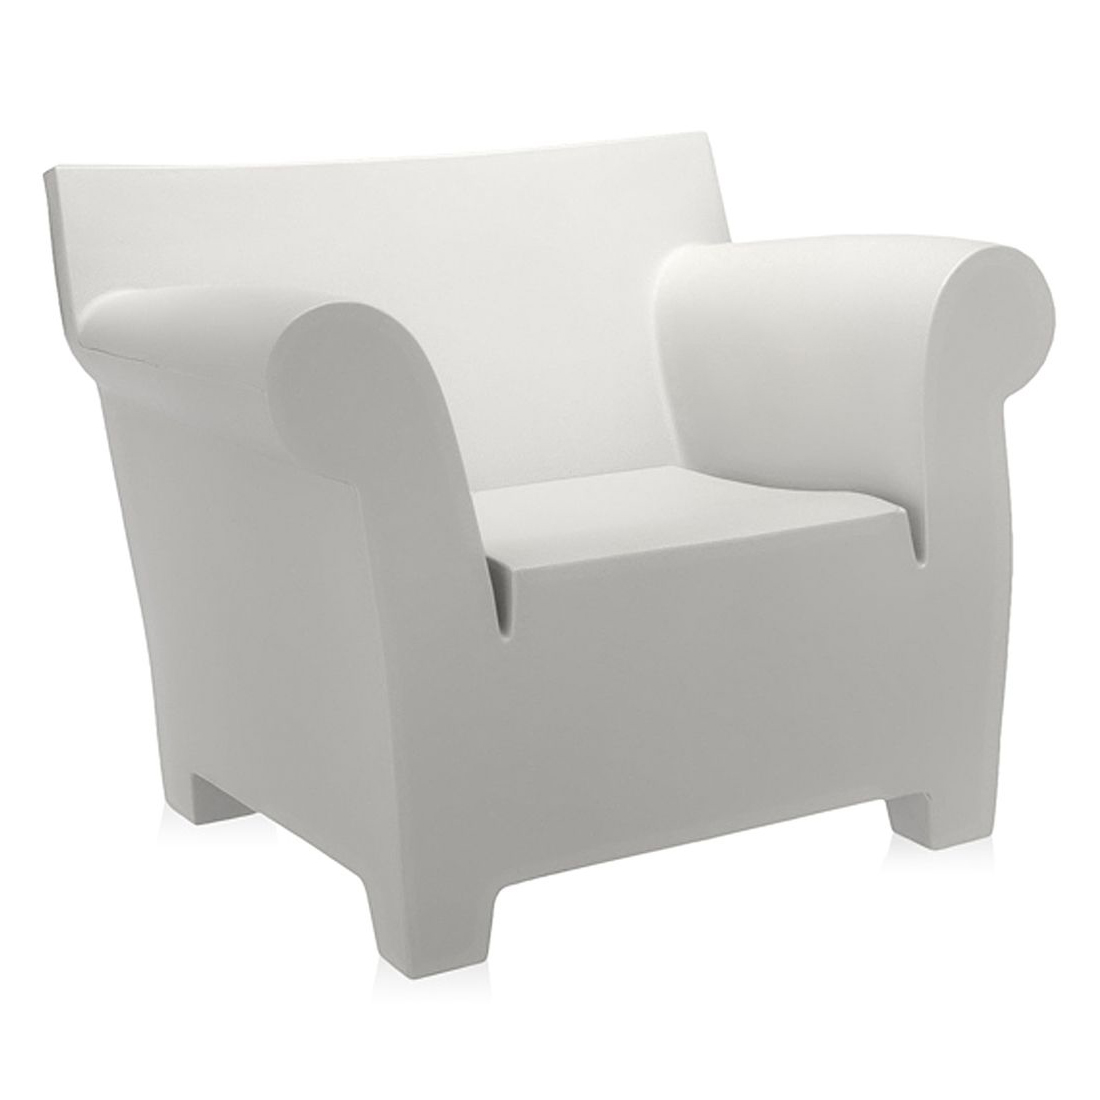 Kartell Bubble Club Armchair by Philippe Starck FREE Shipping